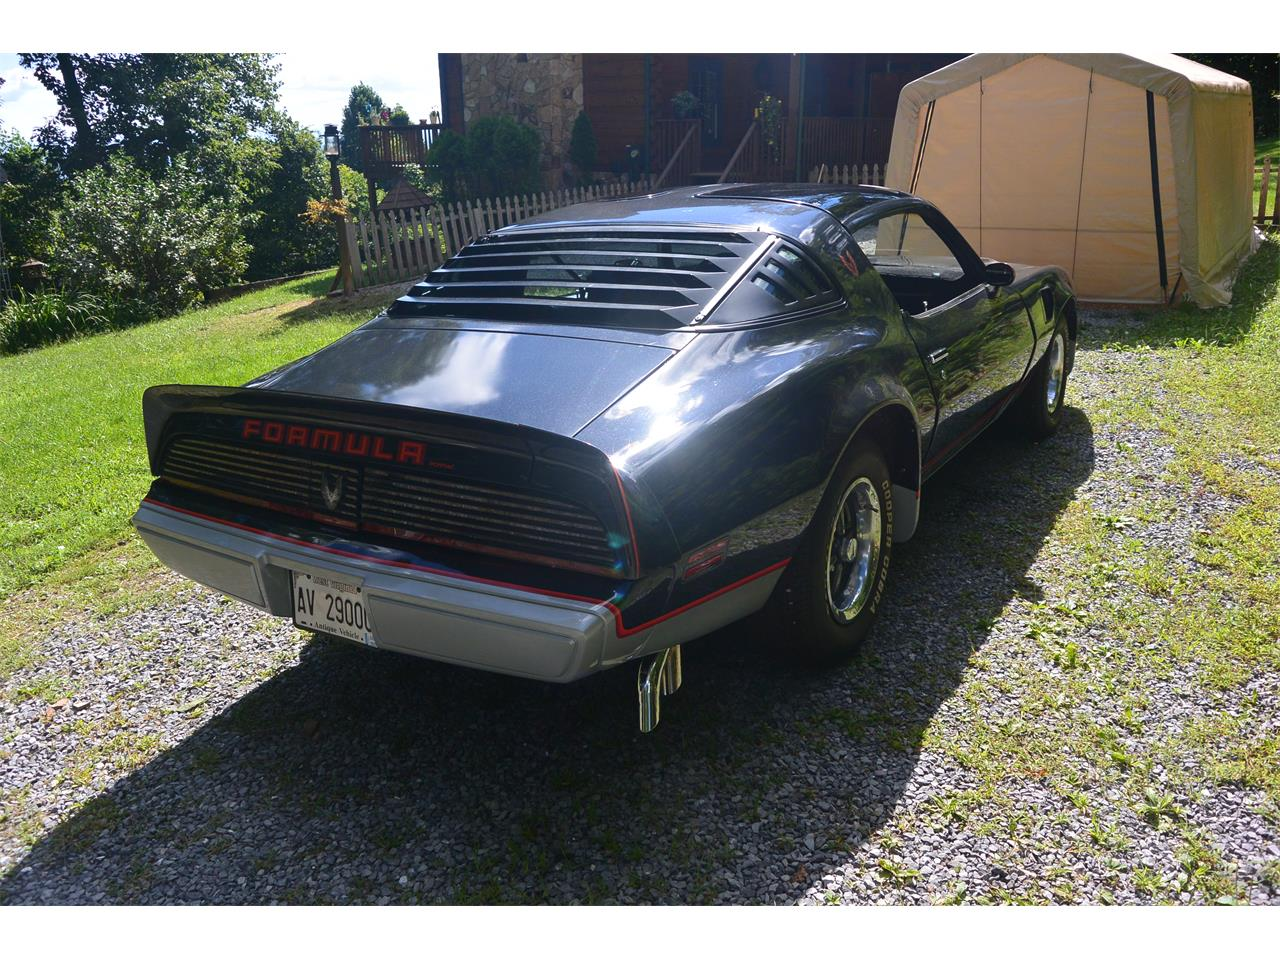 Large Picture of '81 Pontiac Firebird Formula - $16,000.00 Offered by a Private Seller - J6SR